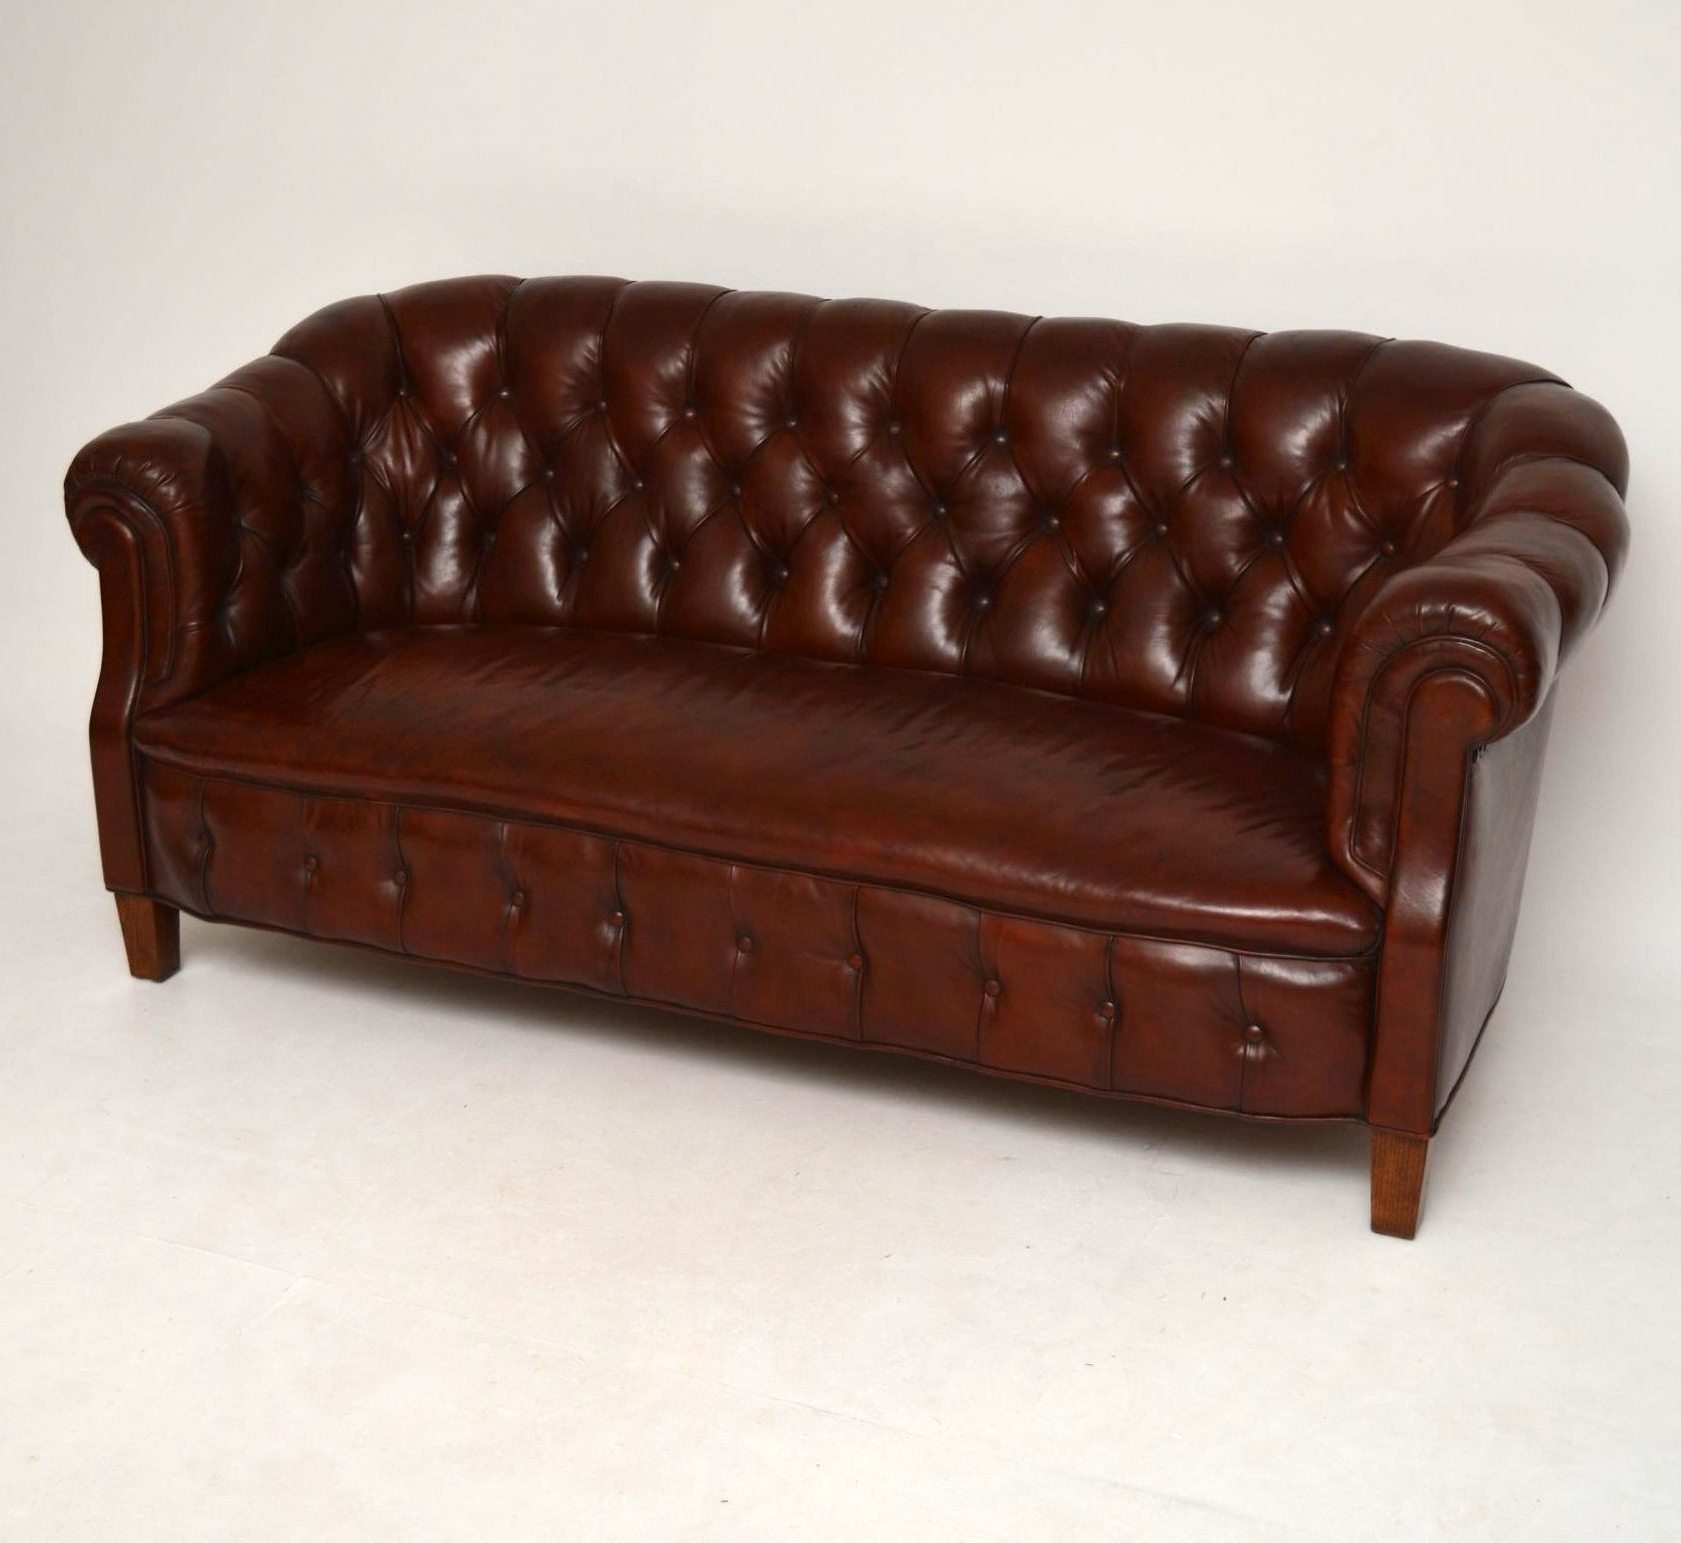 Chesterfield Sofas Inside Recent Antique Swedish Leather Chesterfield Sofa (1890 To 1910 Sweden (View 4 of 20)